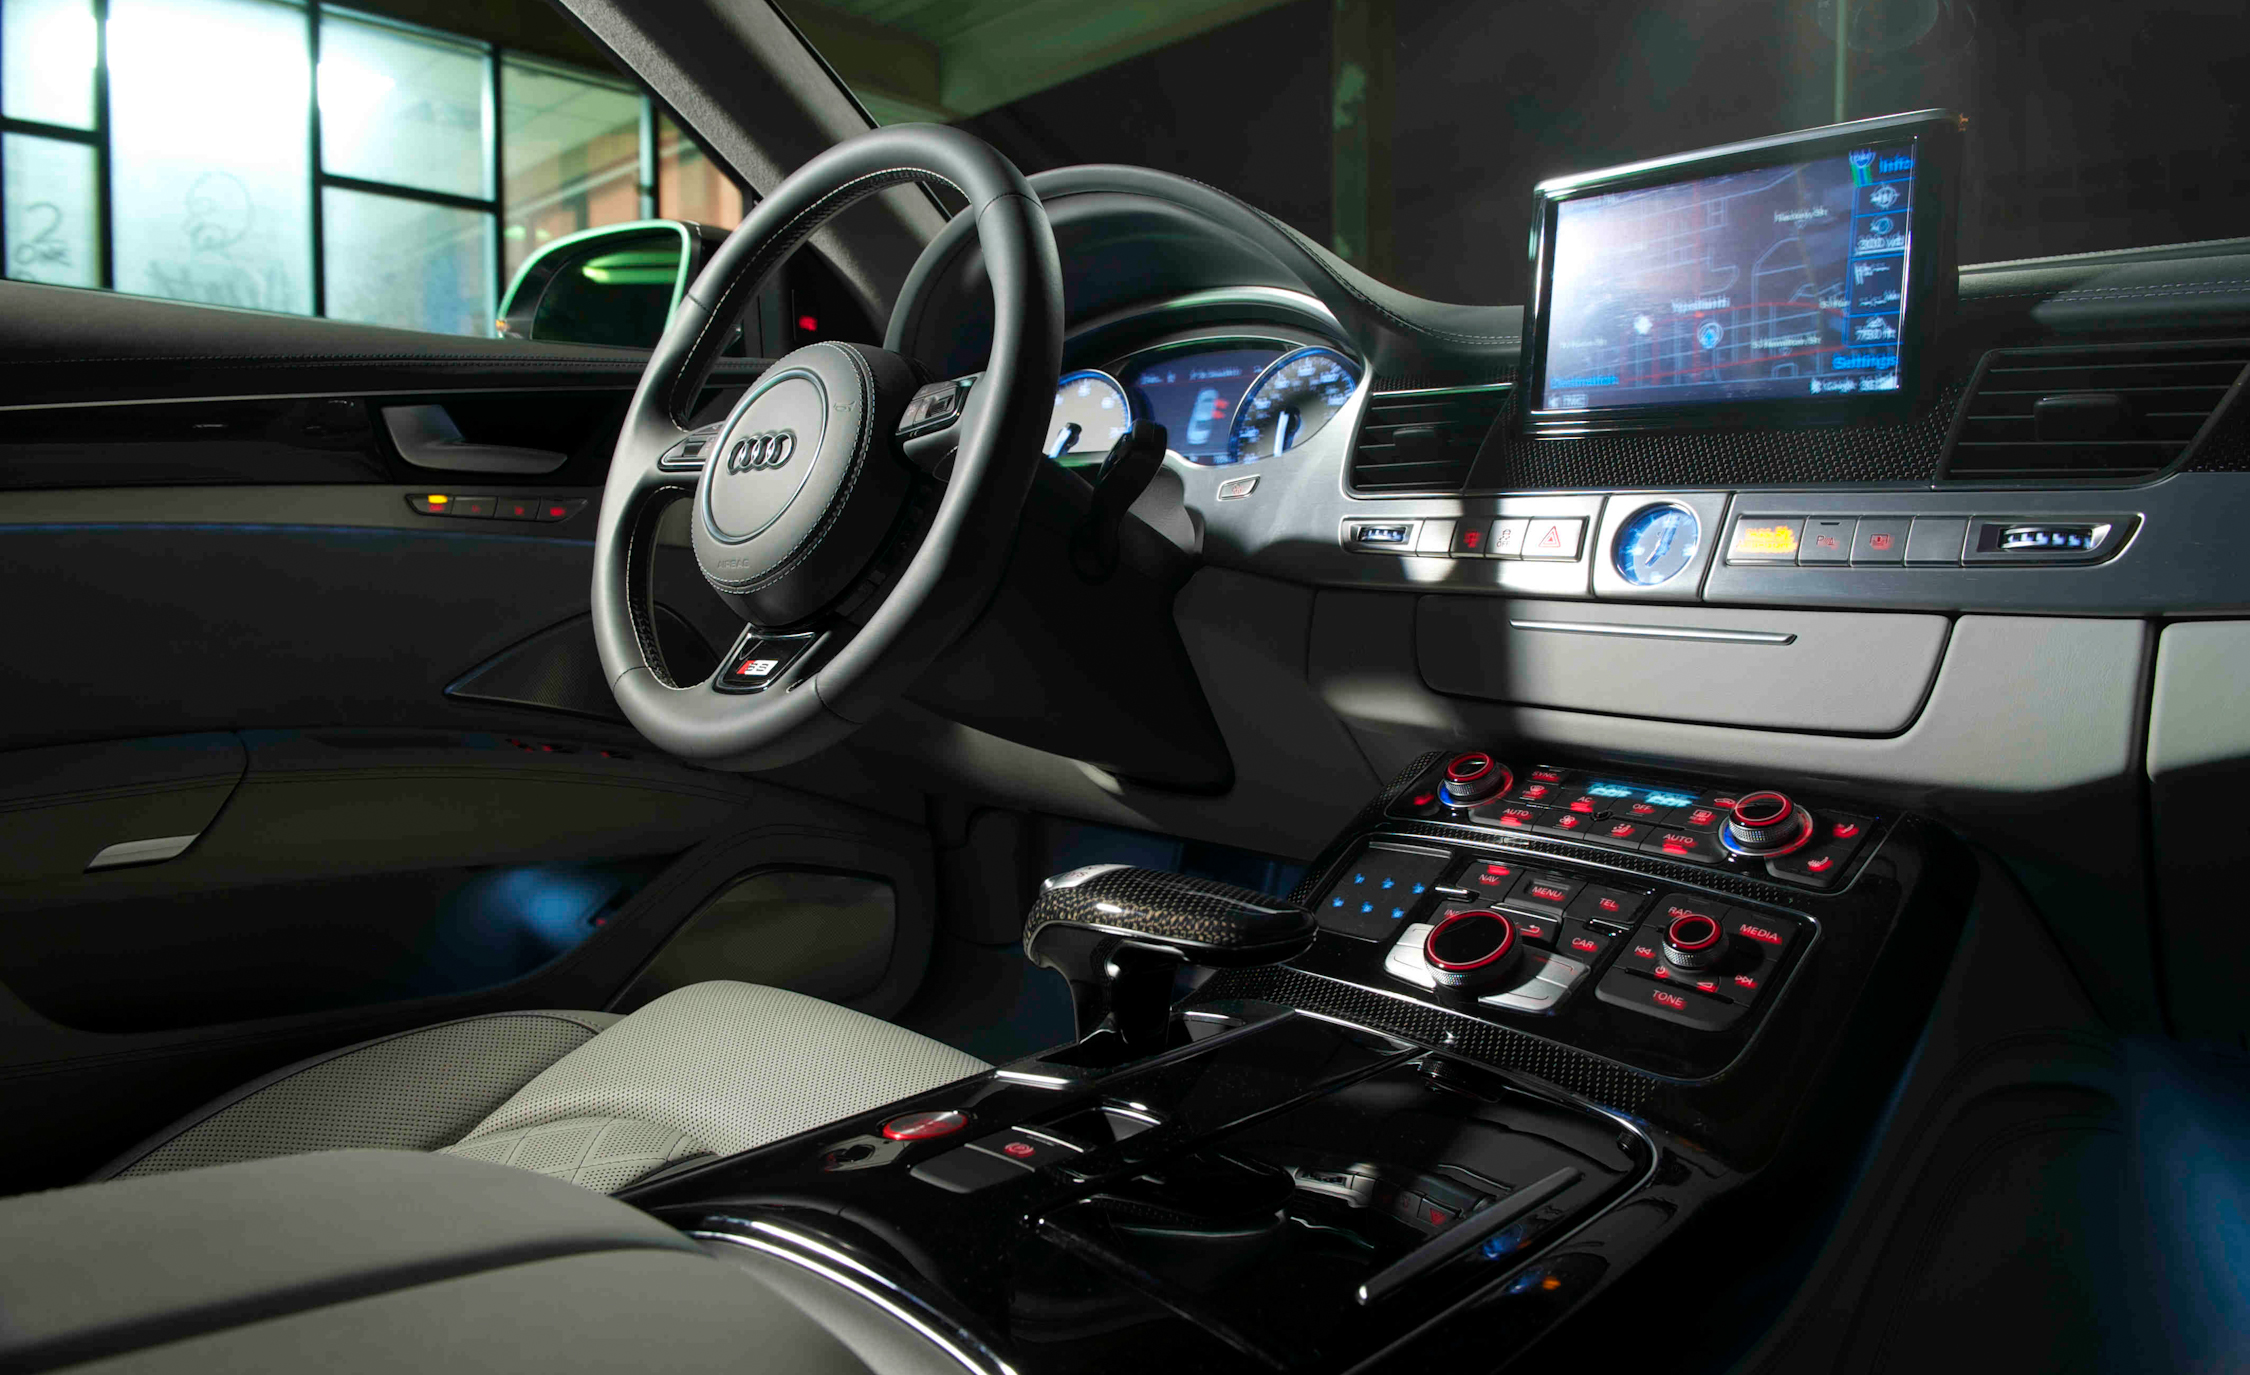 2013 Audi S8 Interior View Dashboard (Photo 16 of 25)